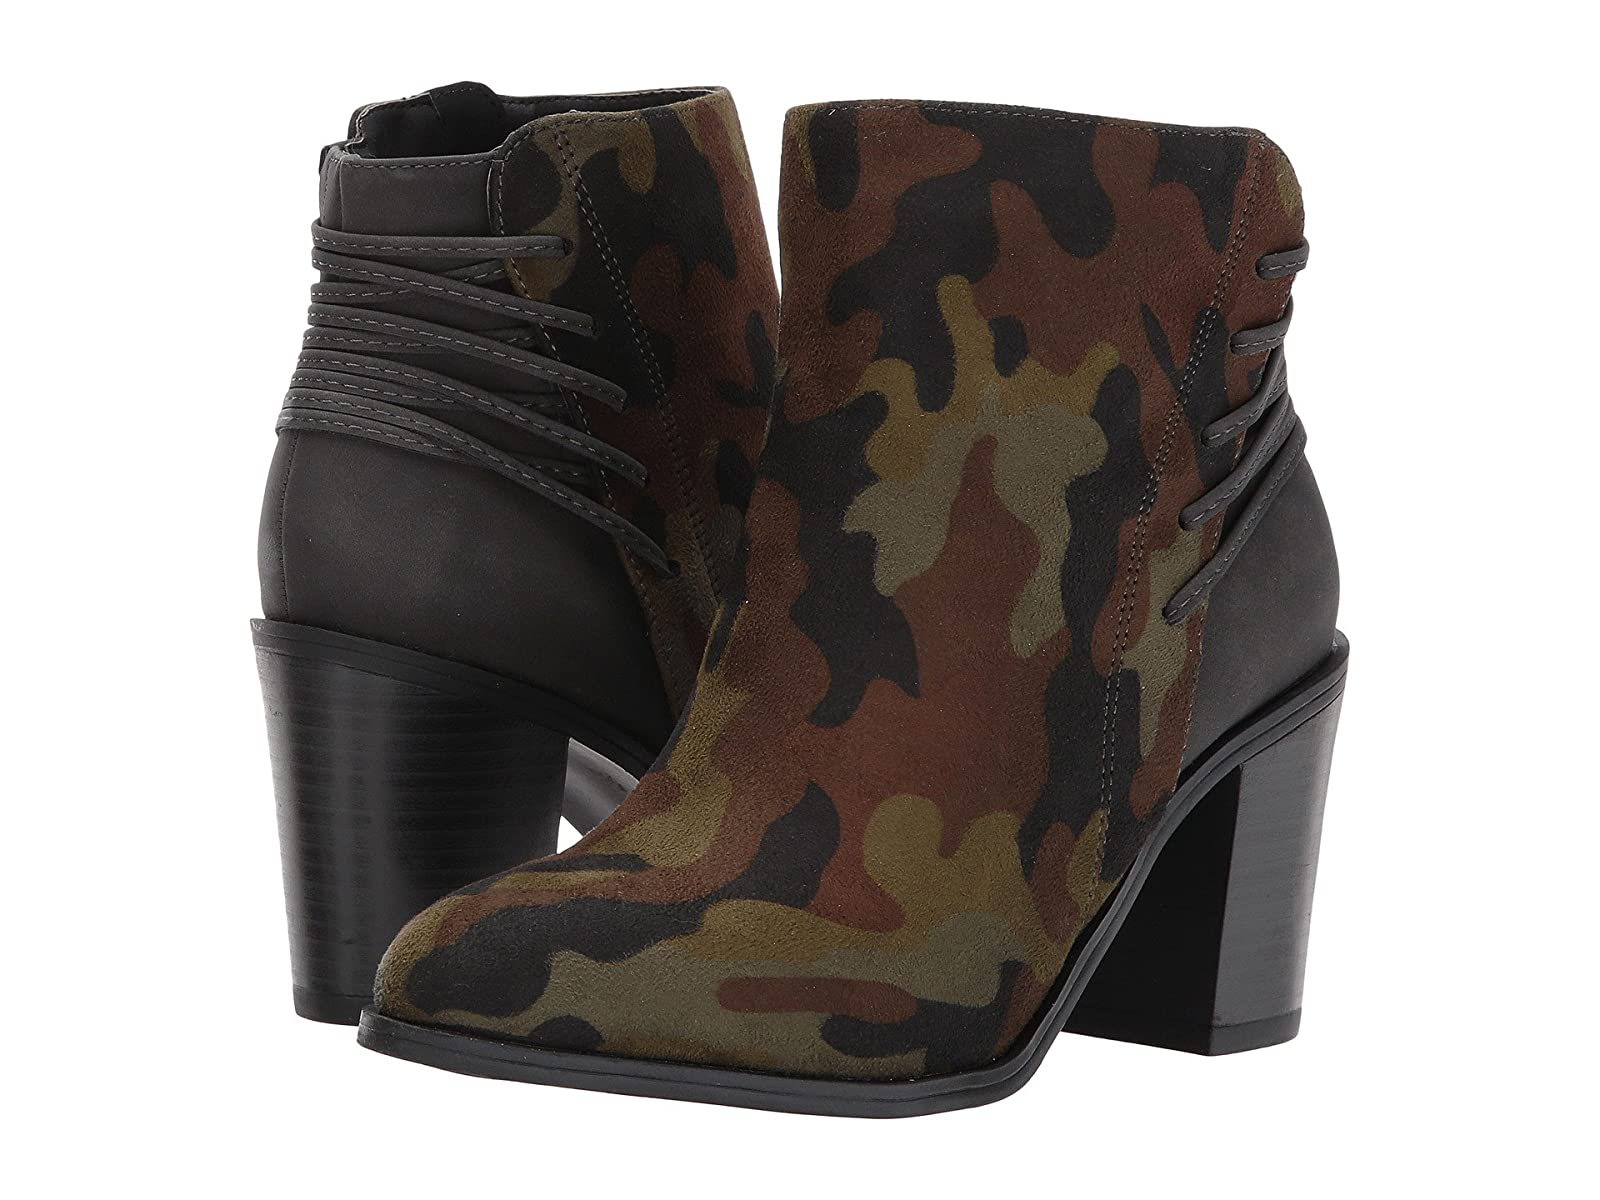 VOLATILE LaceyCheap and distinctive eye-catching shoes